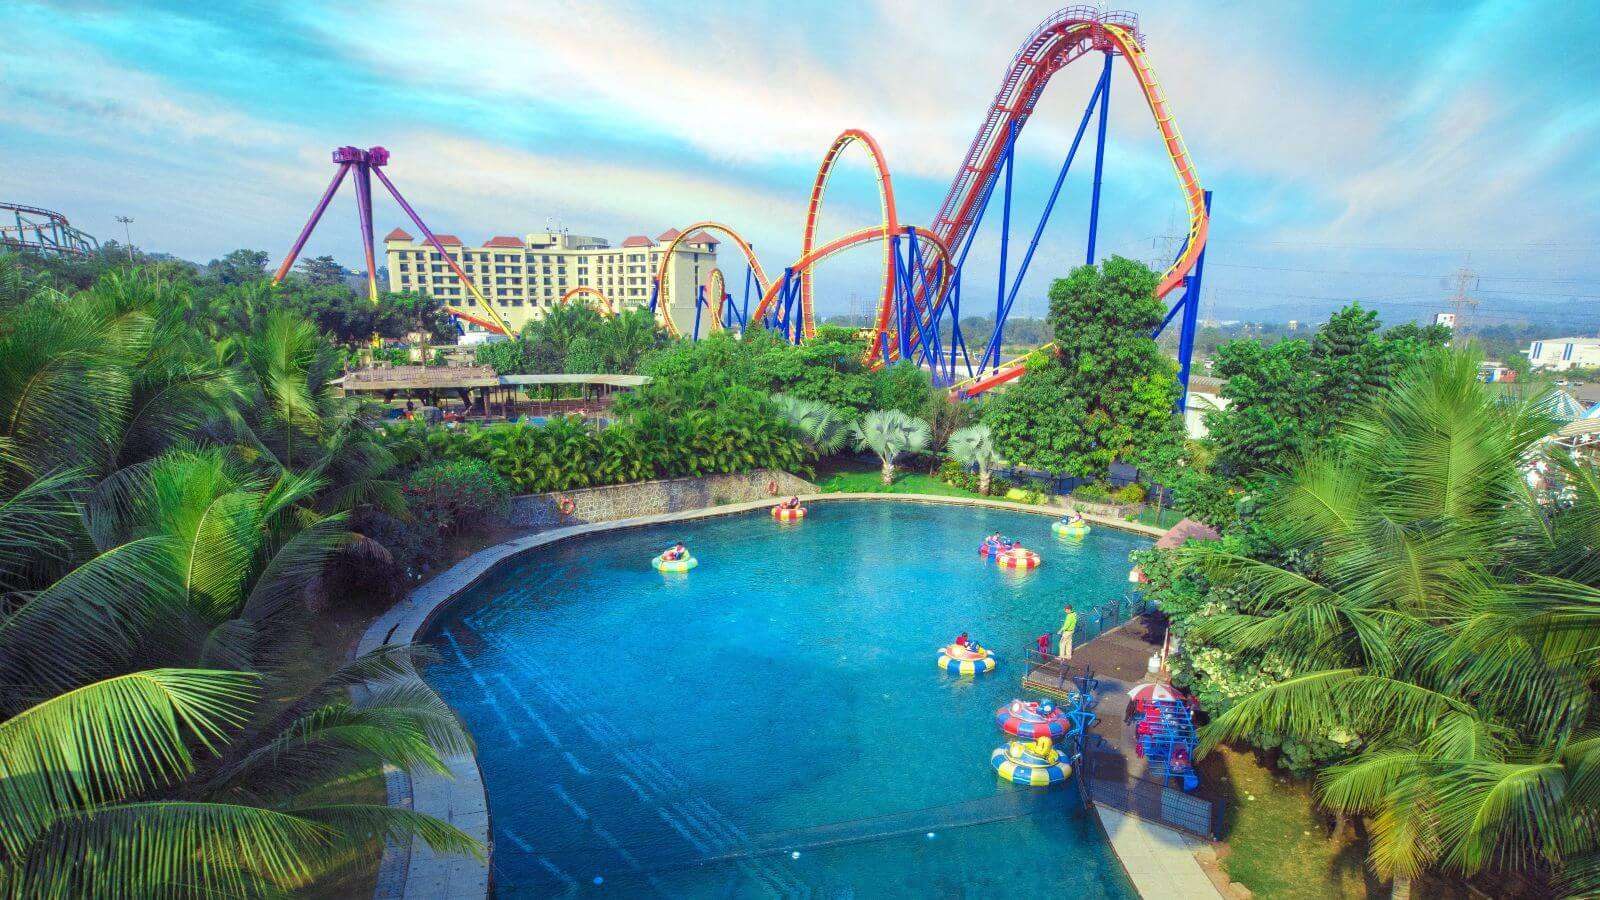 Adlabs Imagica in Pune